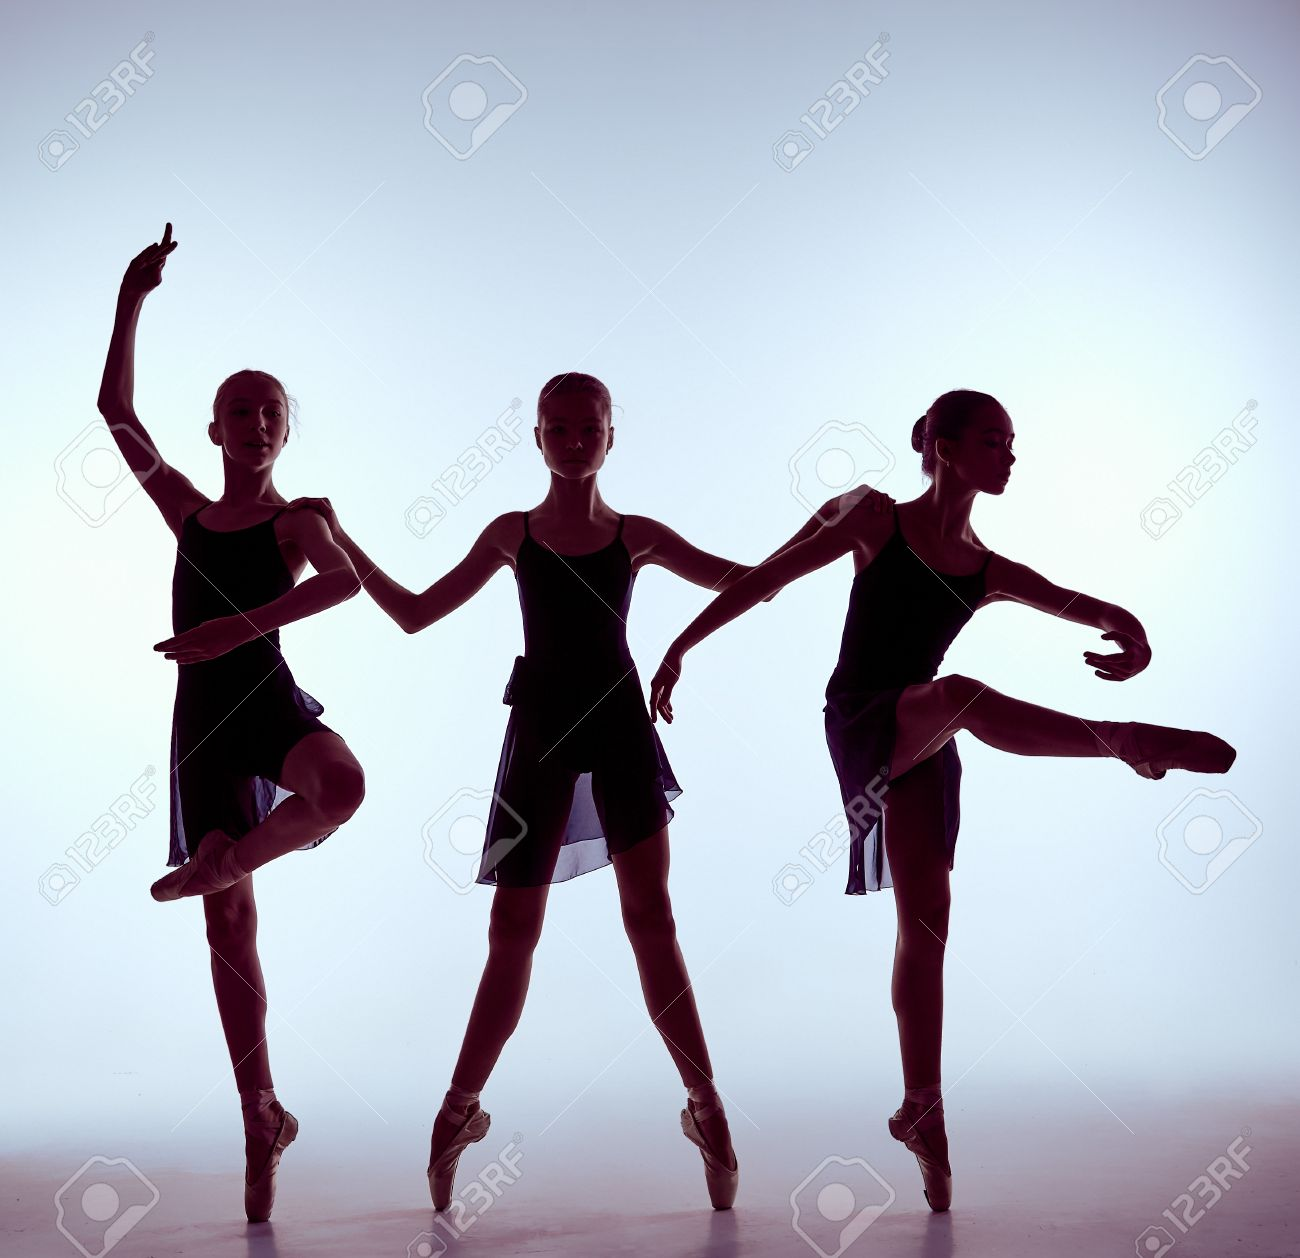 Silhouettes Of Three Young Dancers In Ballet Poses On A Gray Stock Photo Picture And Royalty Free Image Image 40507305